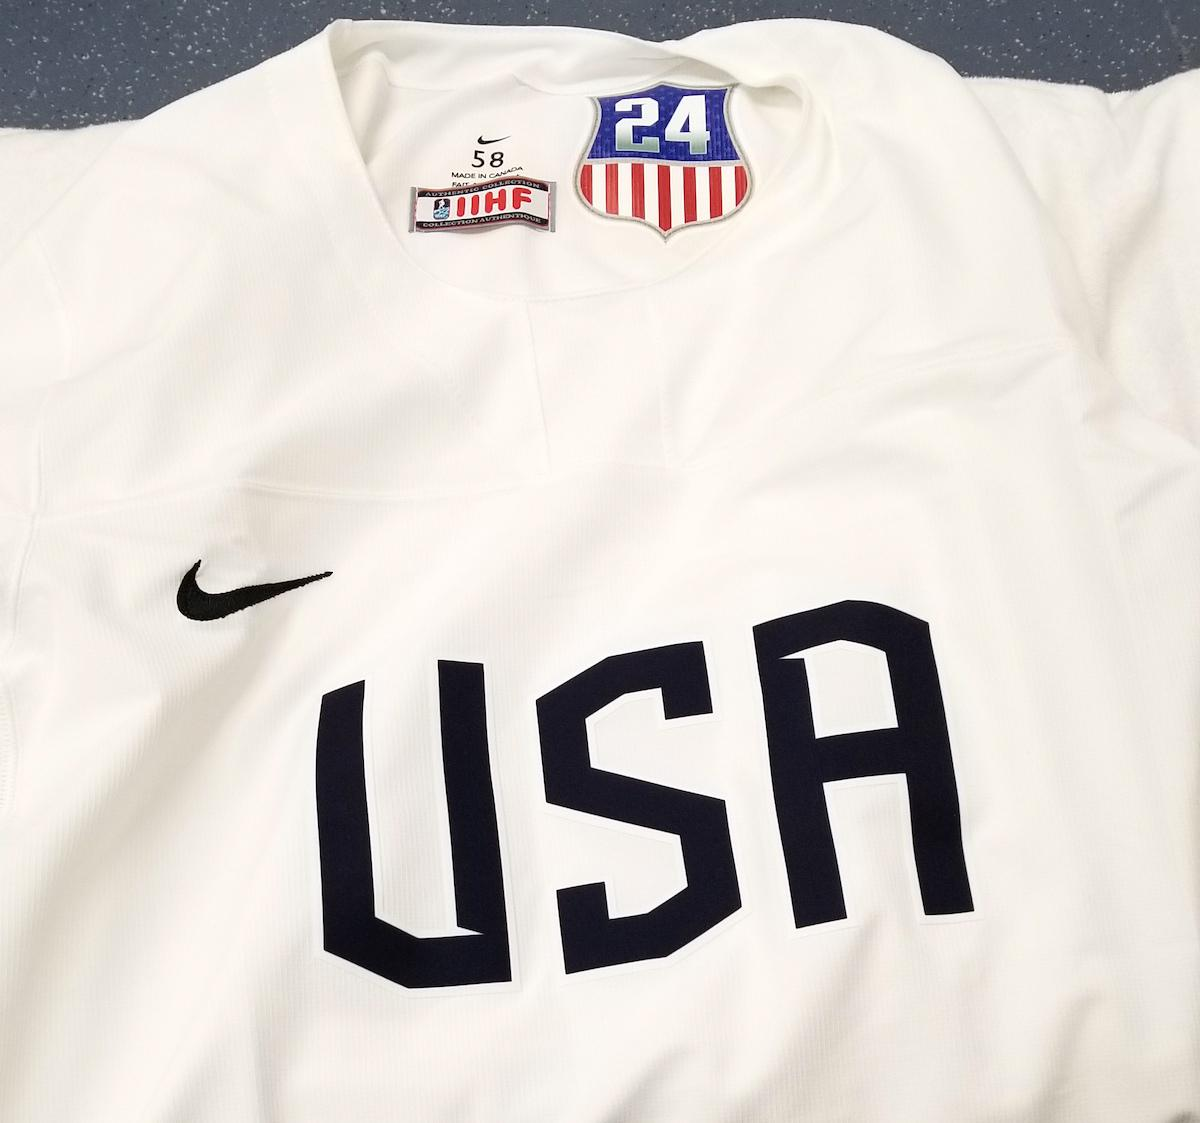 Both the Olympic Men's & Women's Team will wear a patch in honor of J.J. inside of their jerseys